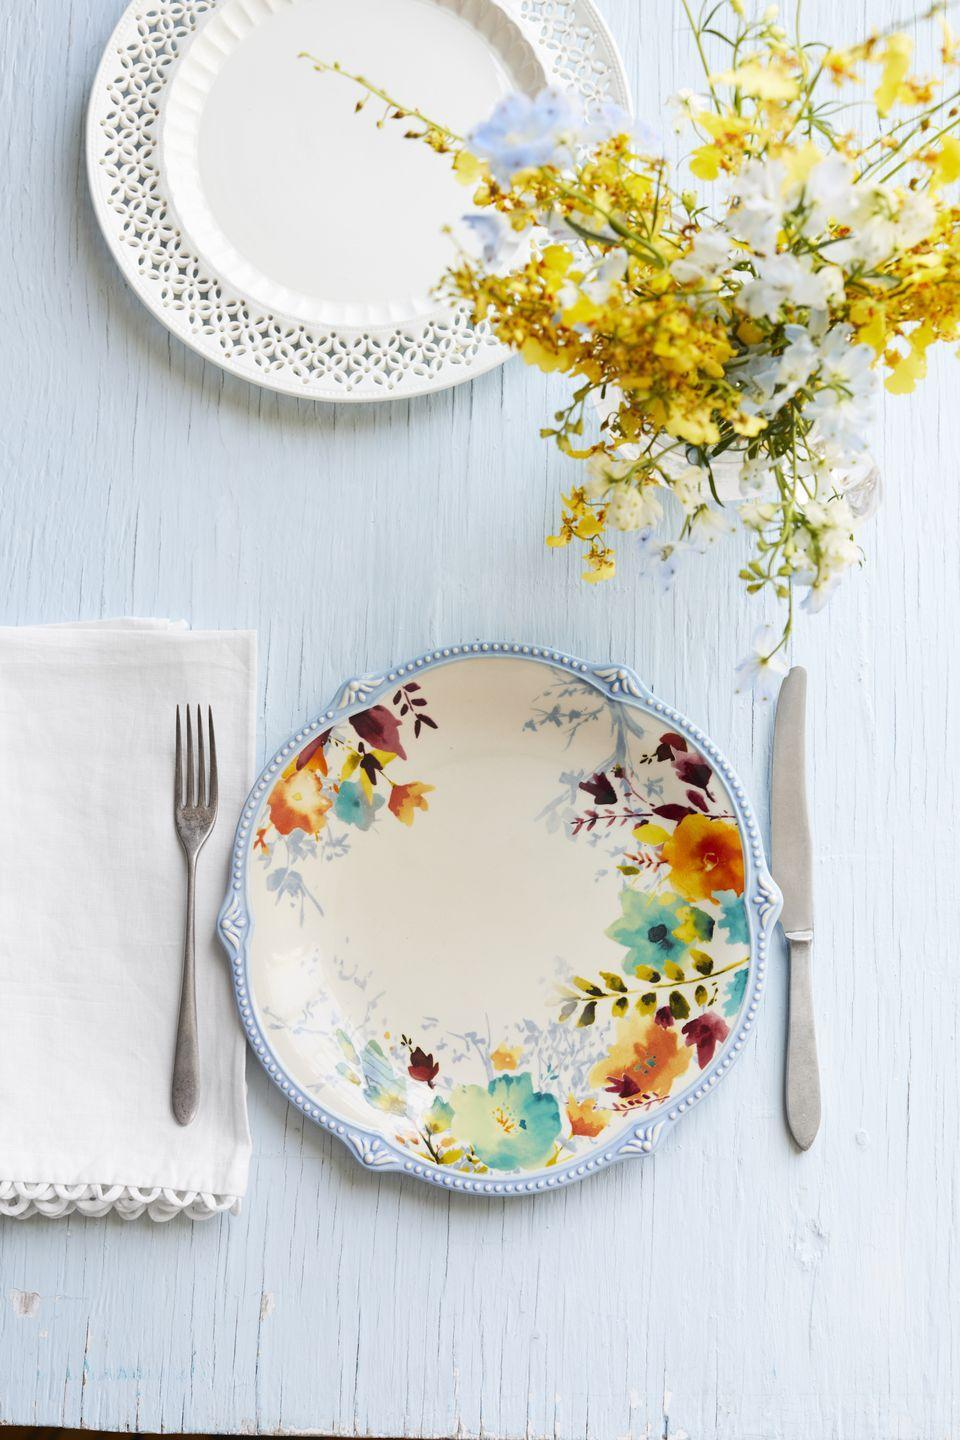 """<p>""""Always set a pretty table. It will even make your mistakes taste better.""""</p><p>— <a href=""""https://www.instagram.com/lovemy2westys/"""" rel=""""nofollow noopener"""" target=""""_blank"""" data-ylk=""""slk:@lovemy2westys"""" class=""""link rapid-noclick-resp"""">@lovemy2westys</a></p>"""